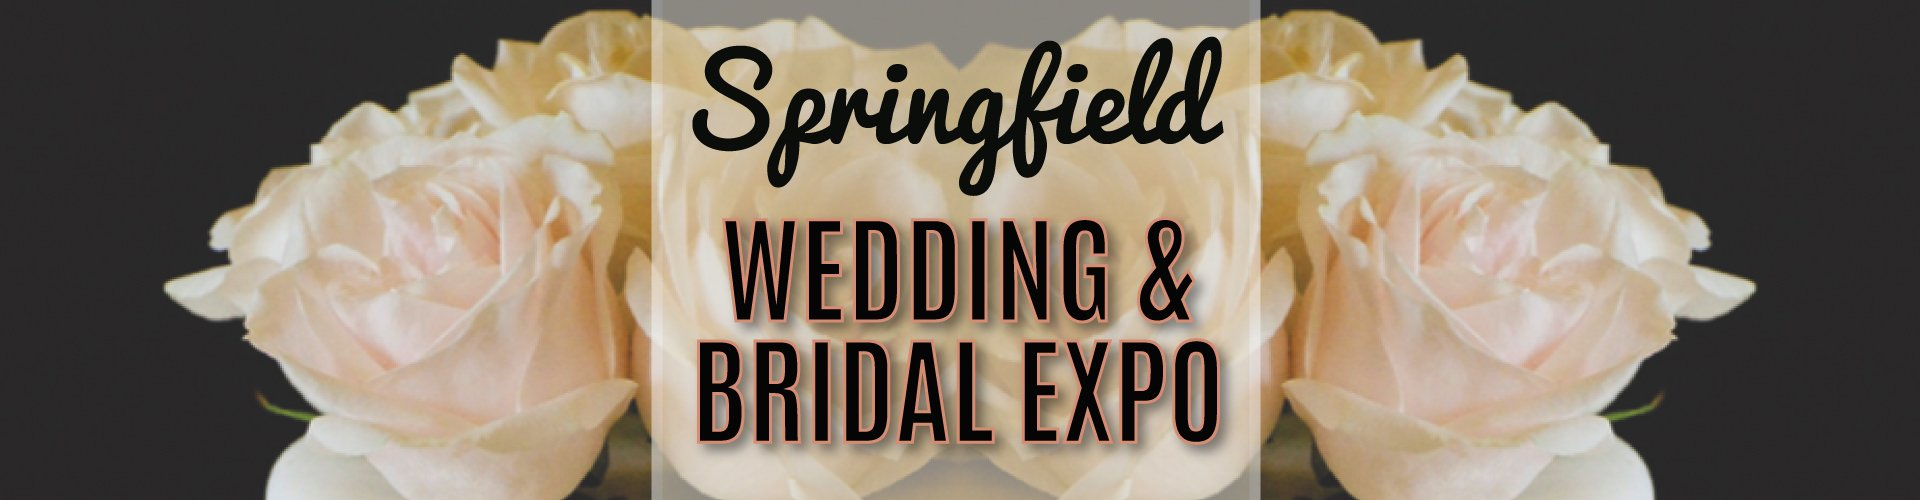 Springfield Wedding Bridal Expo 2019 Wedding Show Western Ma